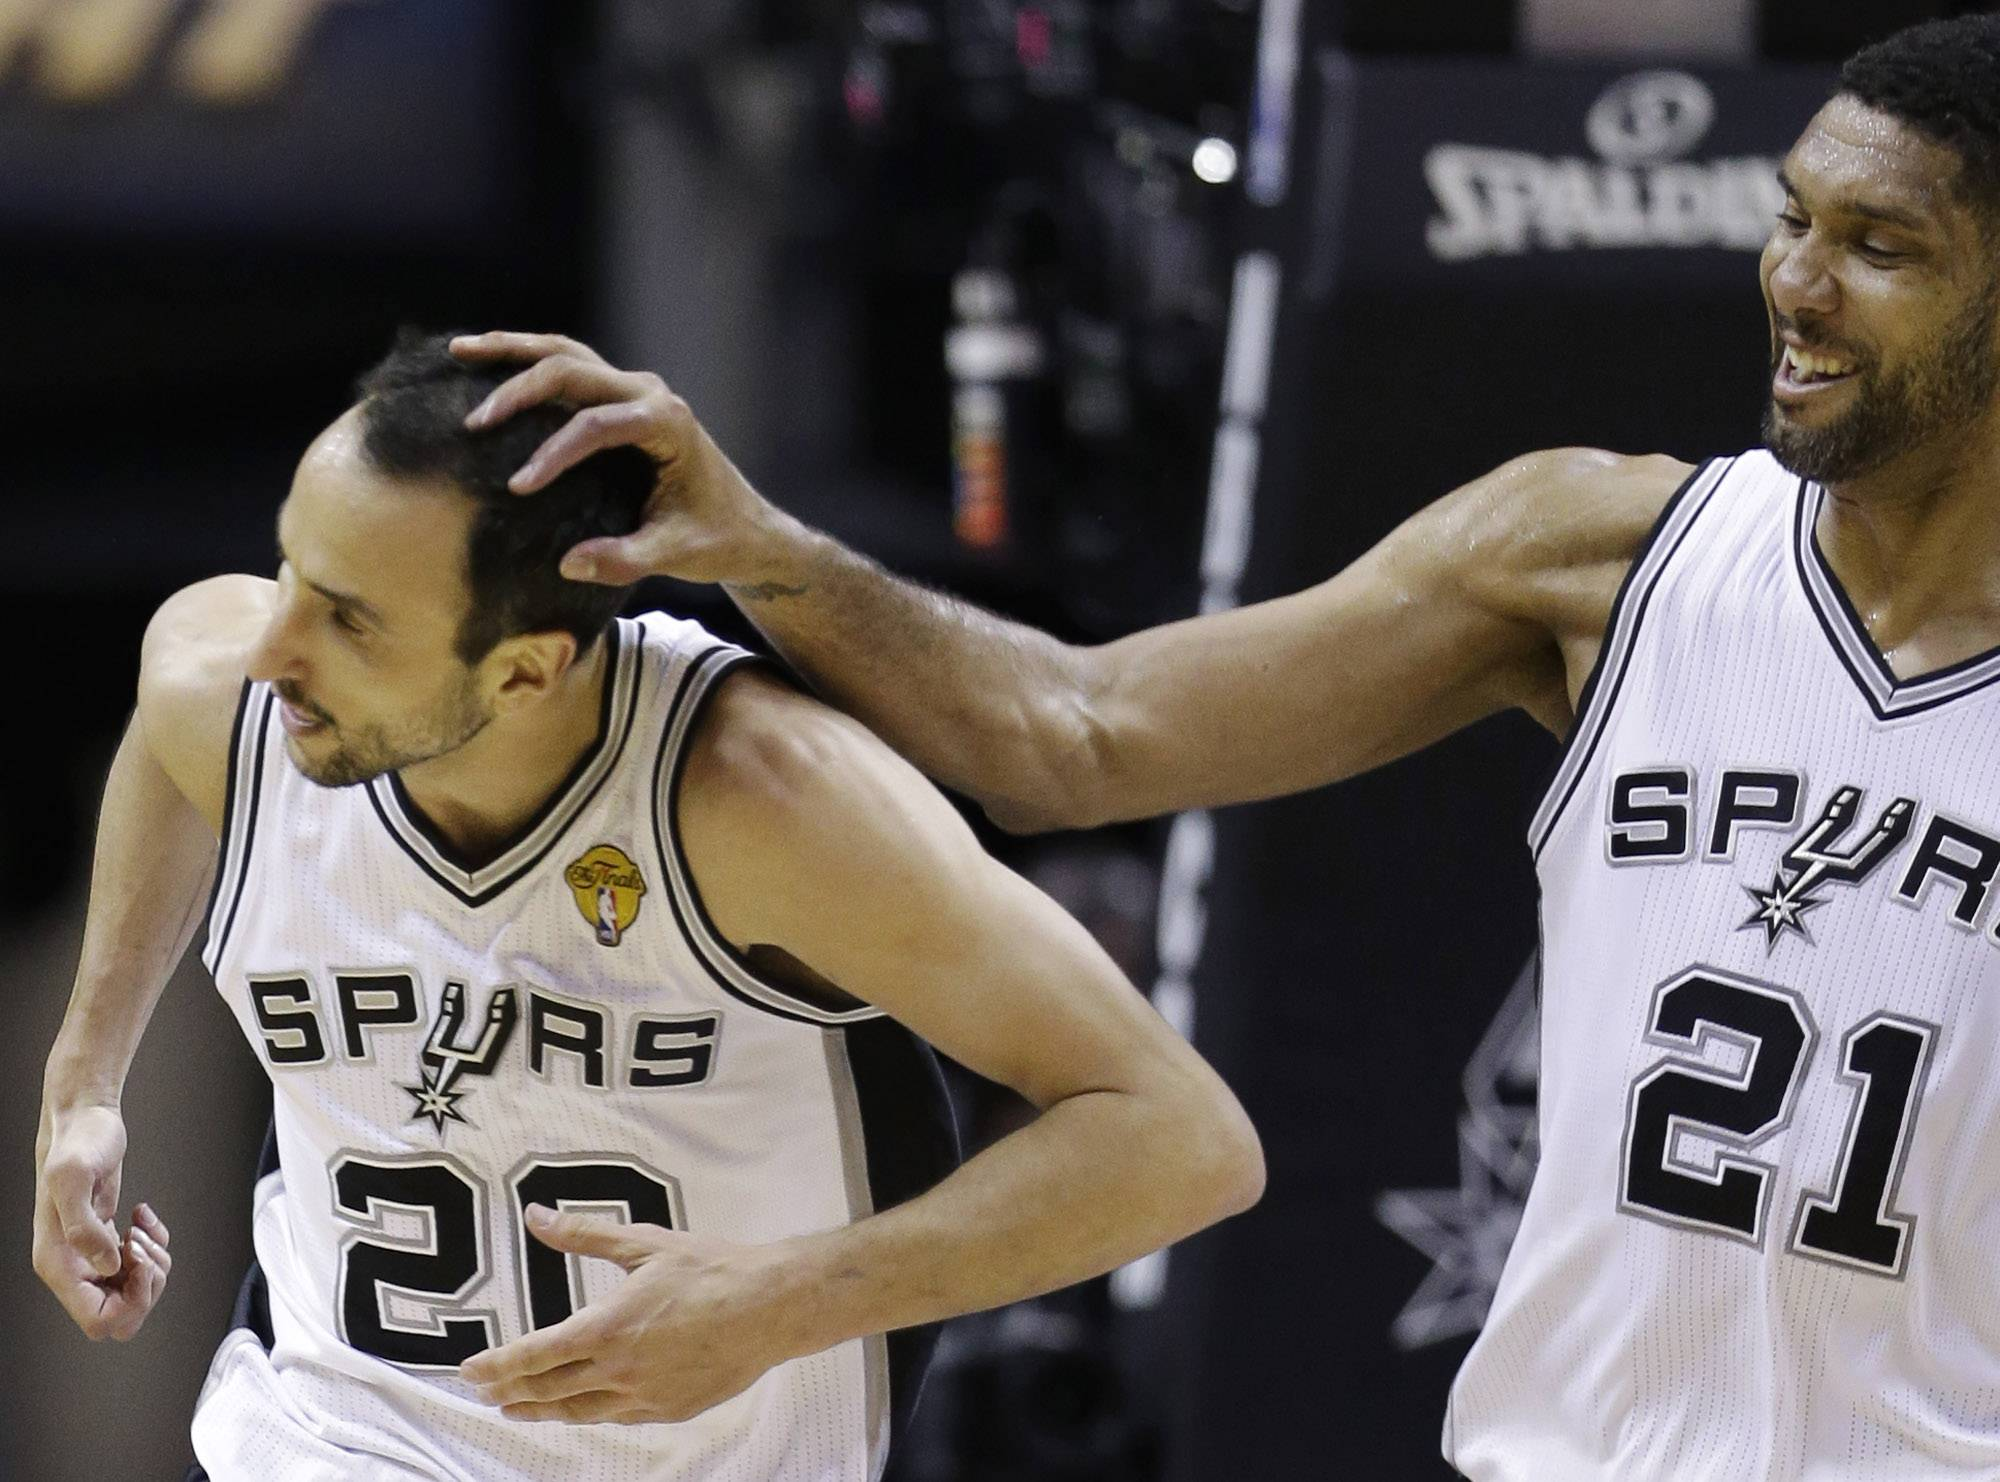 After dunking against the Miami Heat, San Antonio Spurs guard Manu Ginobili (20) is congratulated by forward Tim Duncan (21) during the first half in Game 5 of the NBA basketball finals on Sunday, June 15, 2014, in San Antonio.